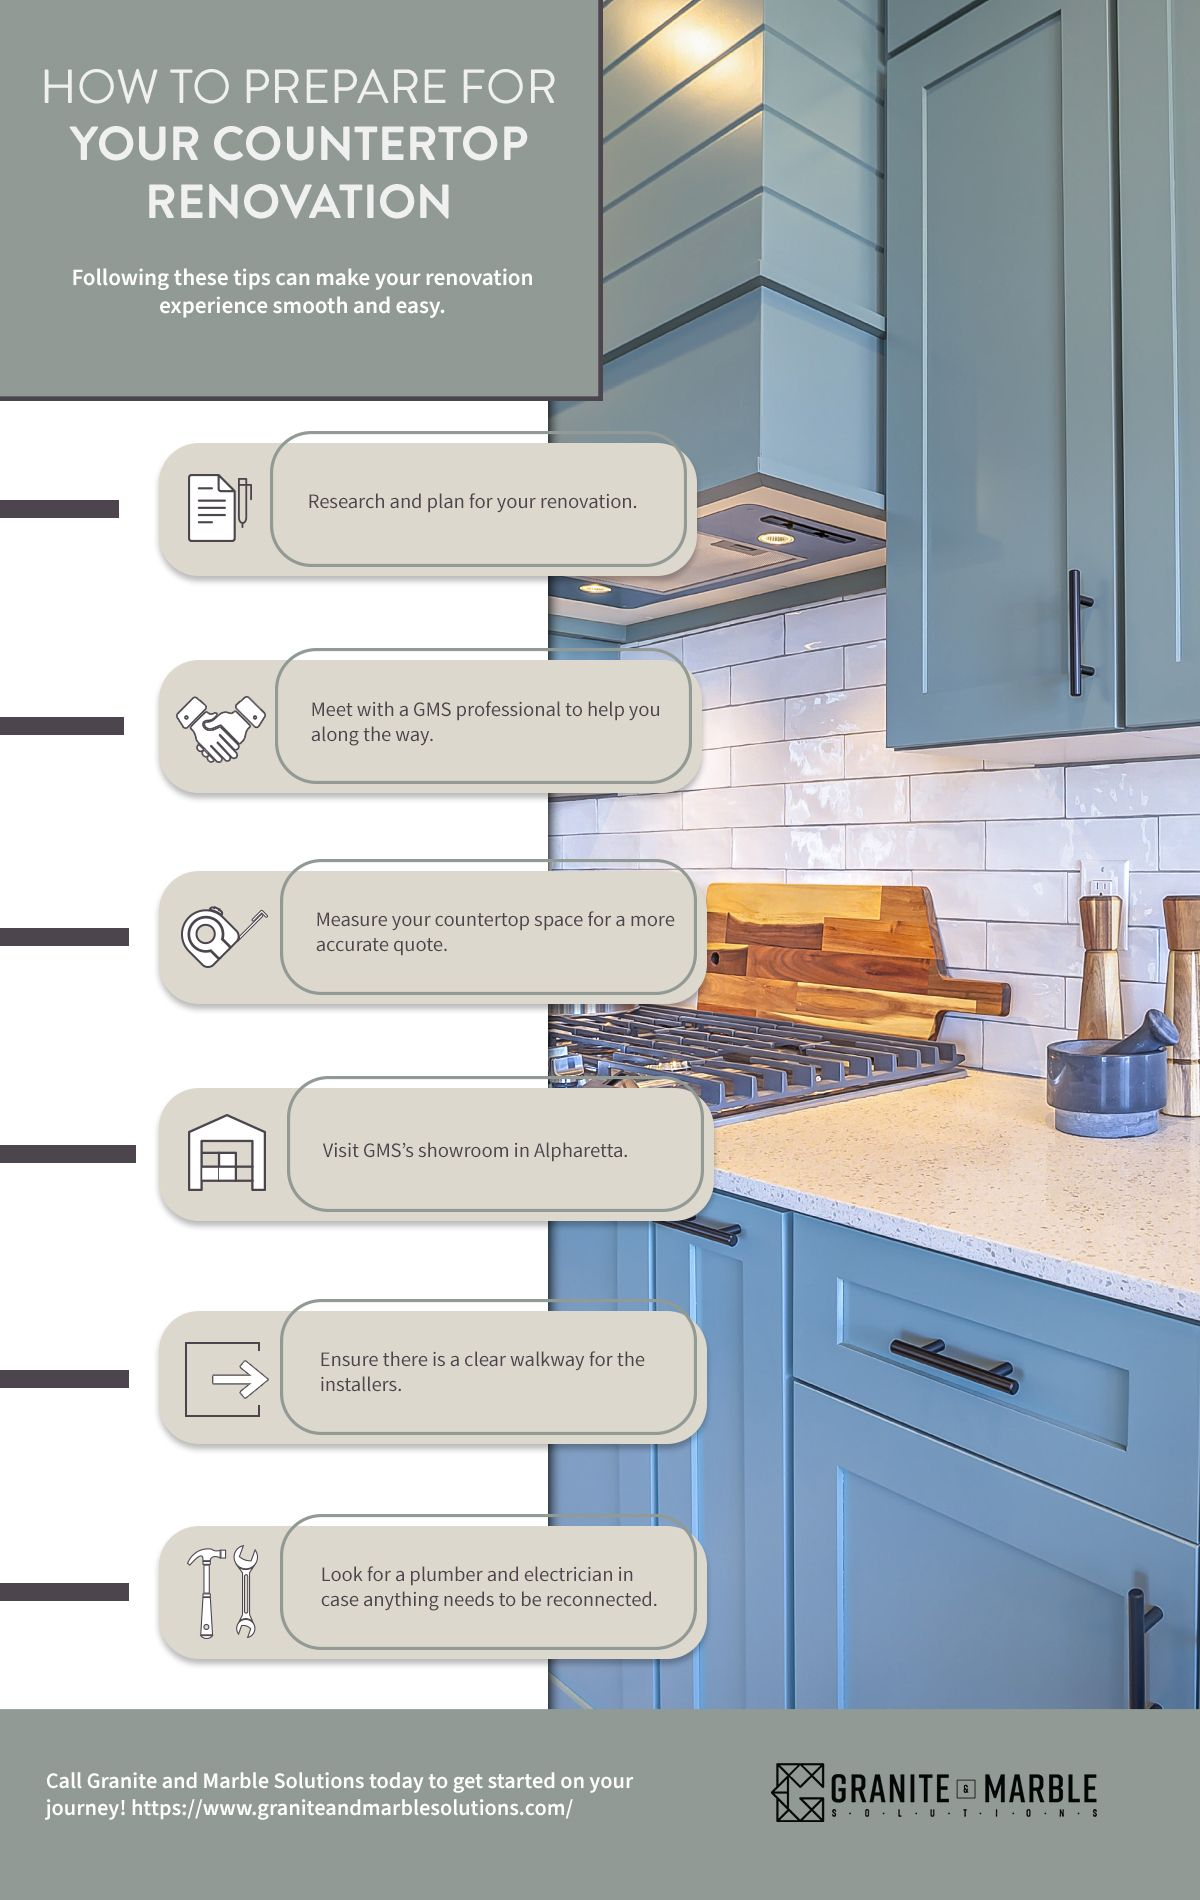 How to Prepare For Your Countertop Renovation_.jpg